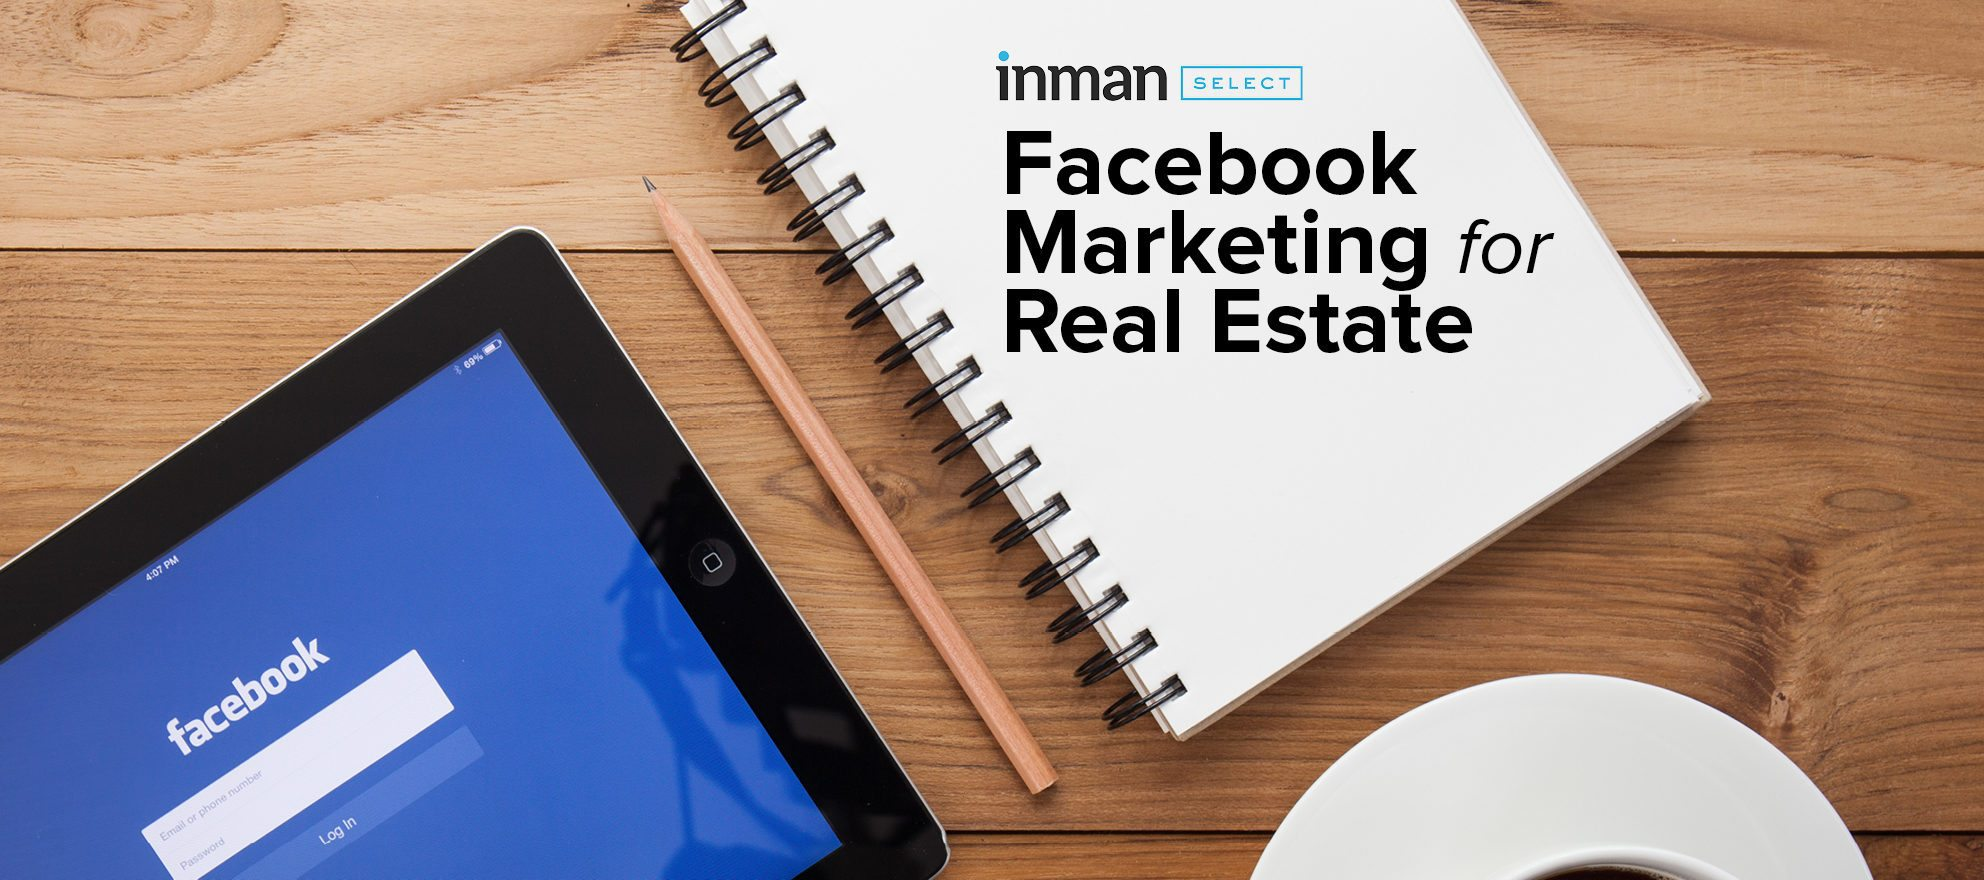 webinar facebook marketing for real estate